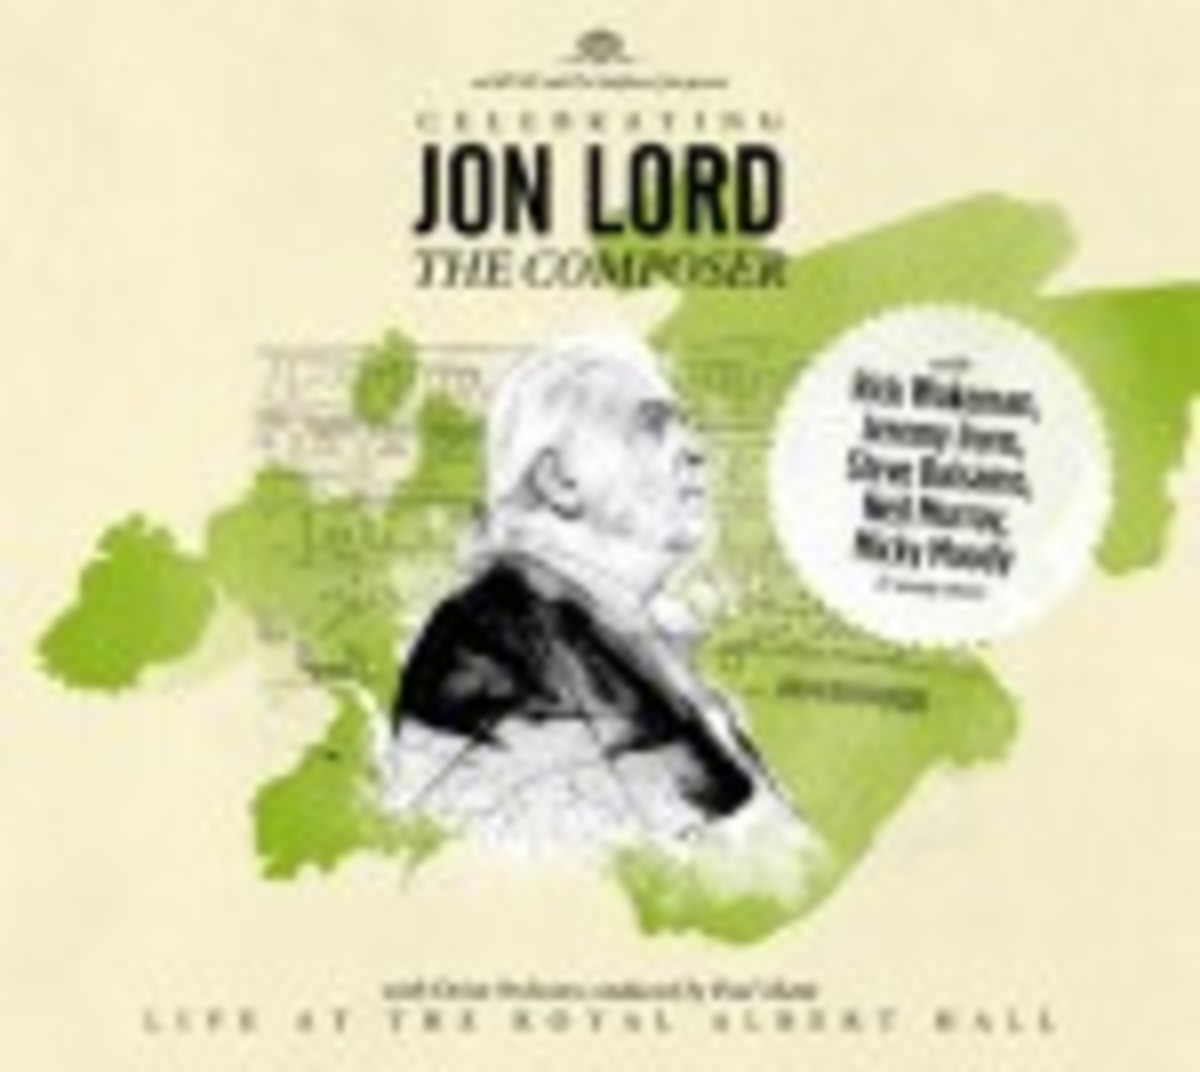 John Lord The Composer